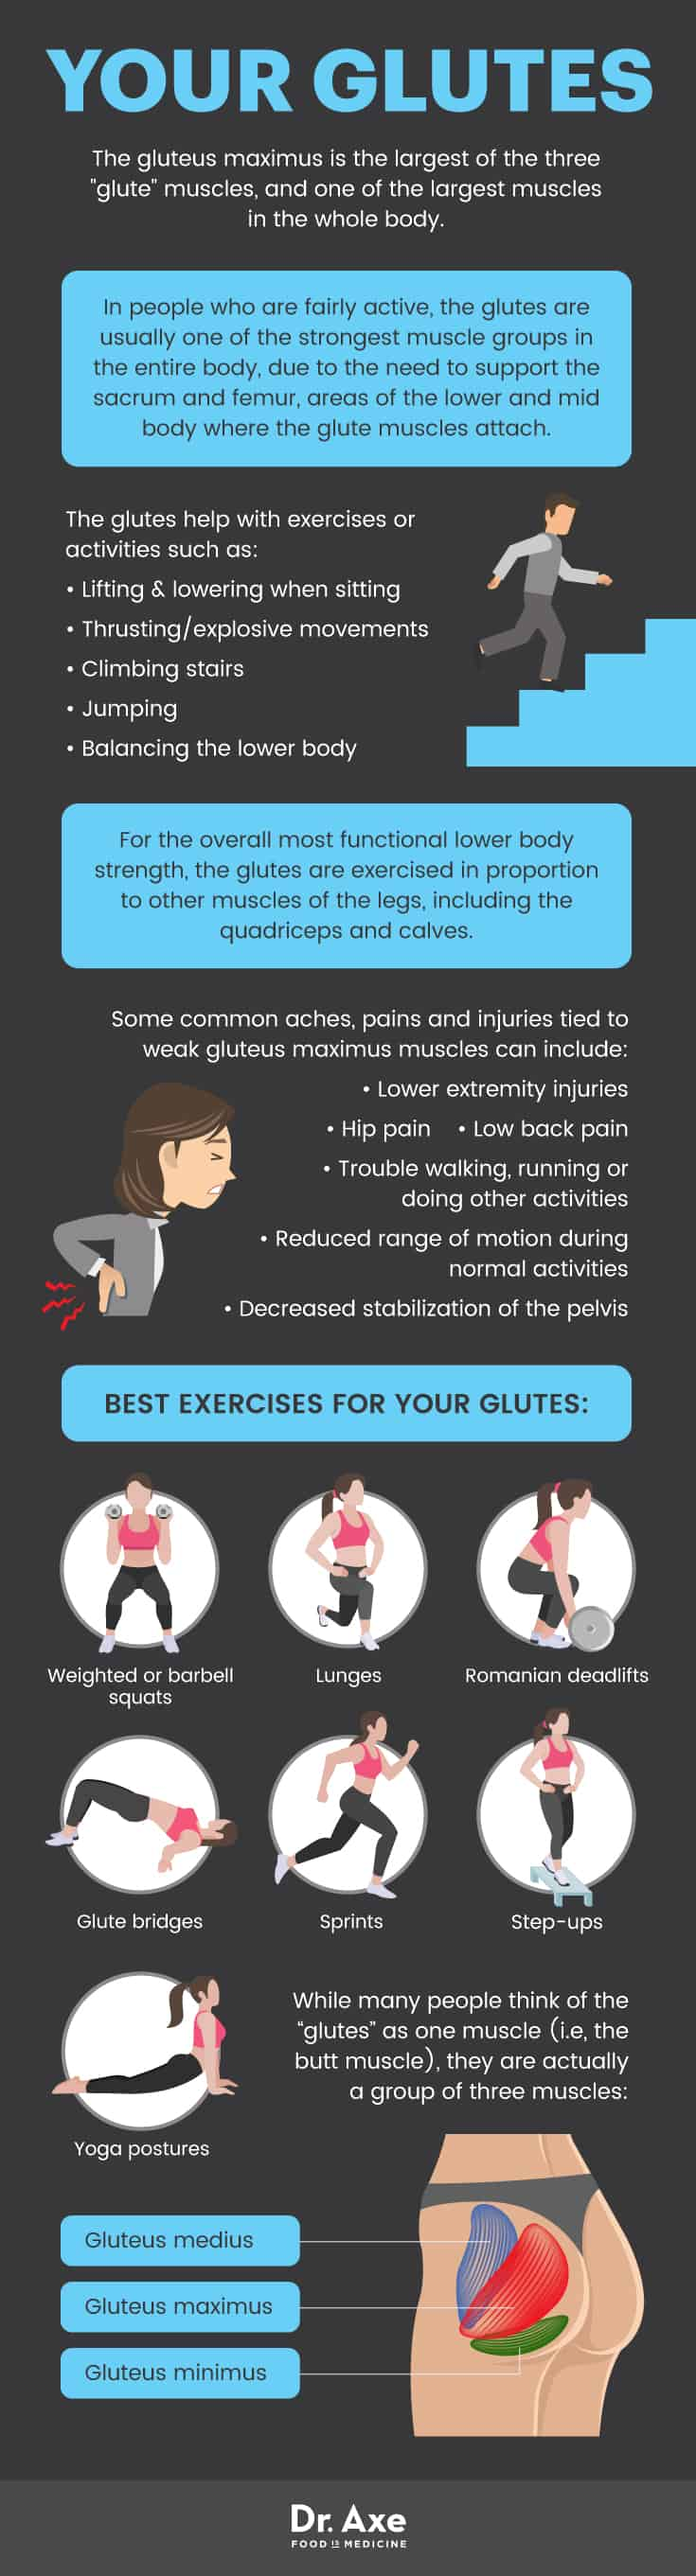 Glutes guide - Dr. Axe